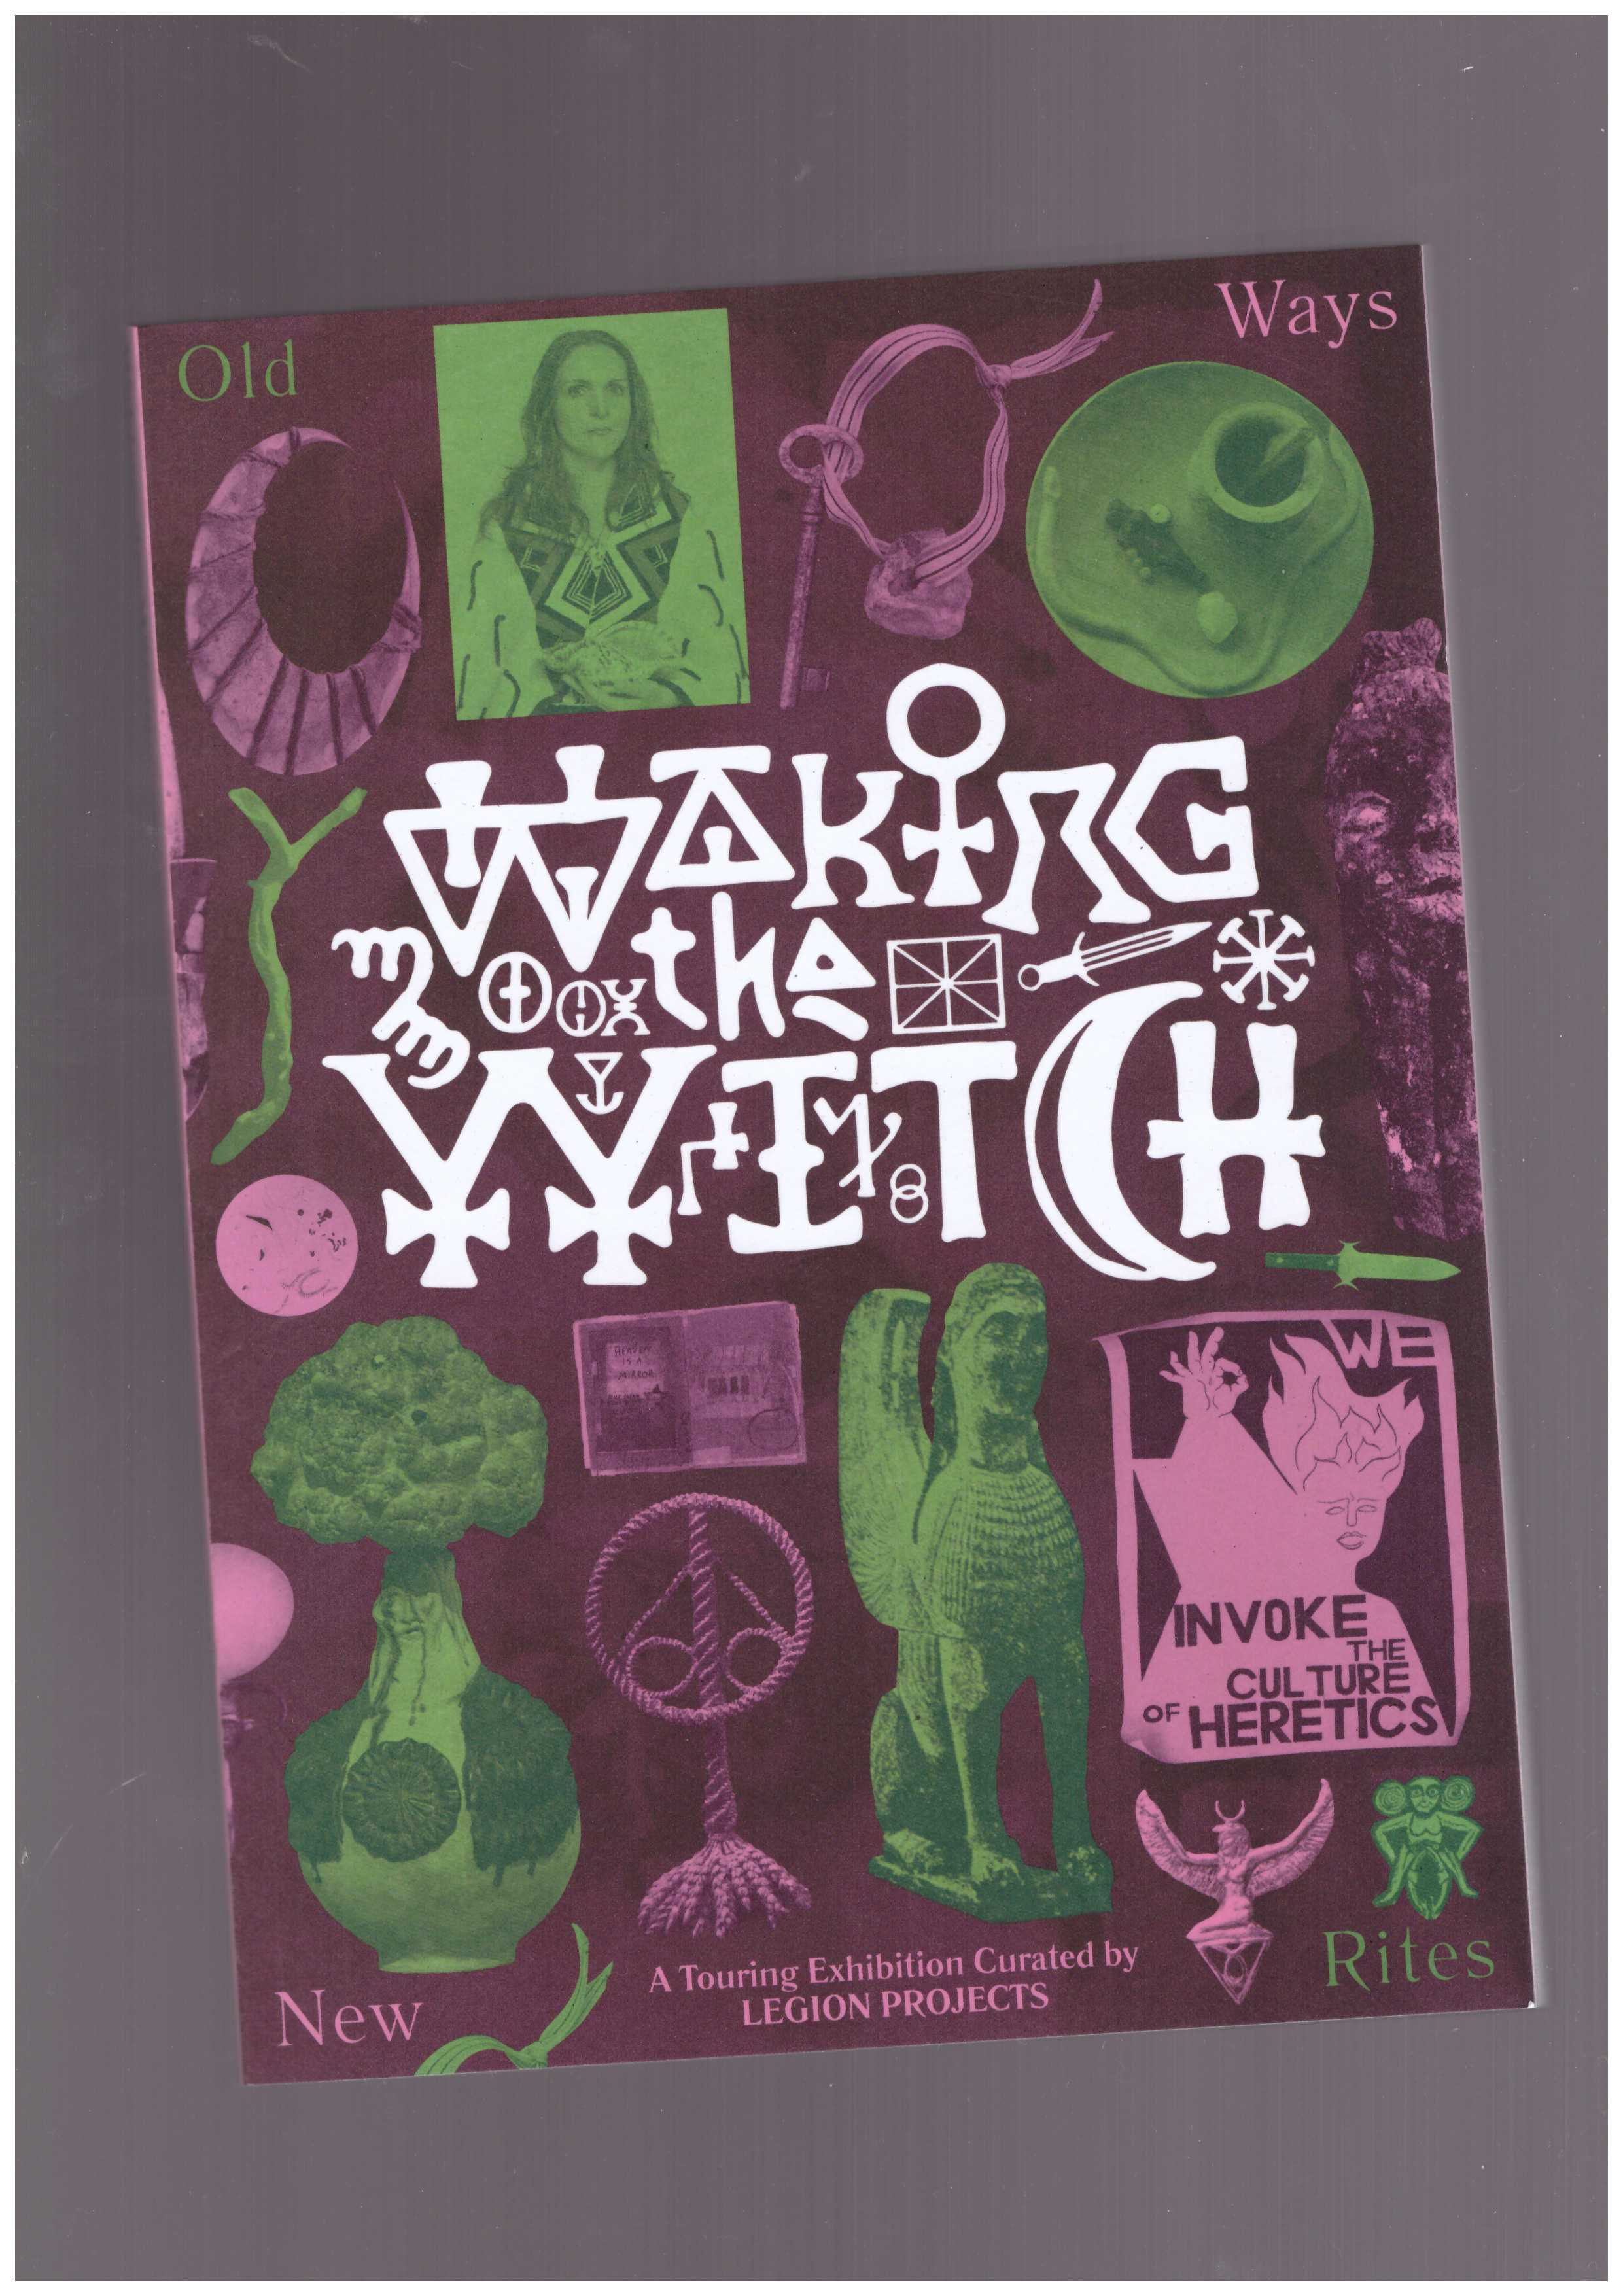 HUGHES, Matthew ; HELLE Una Hamilton  - Waking the Witch